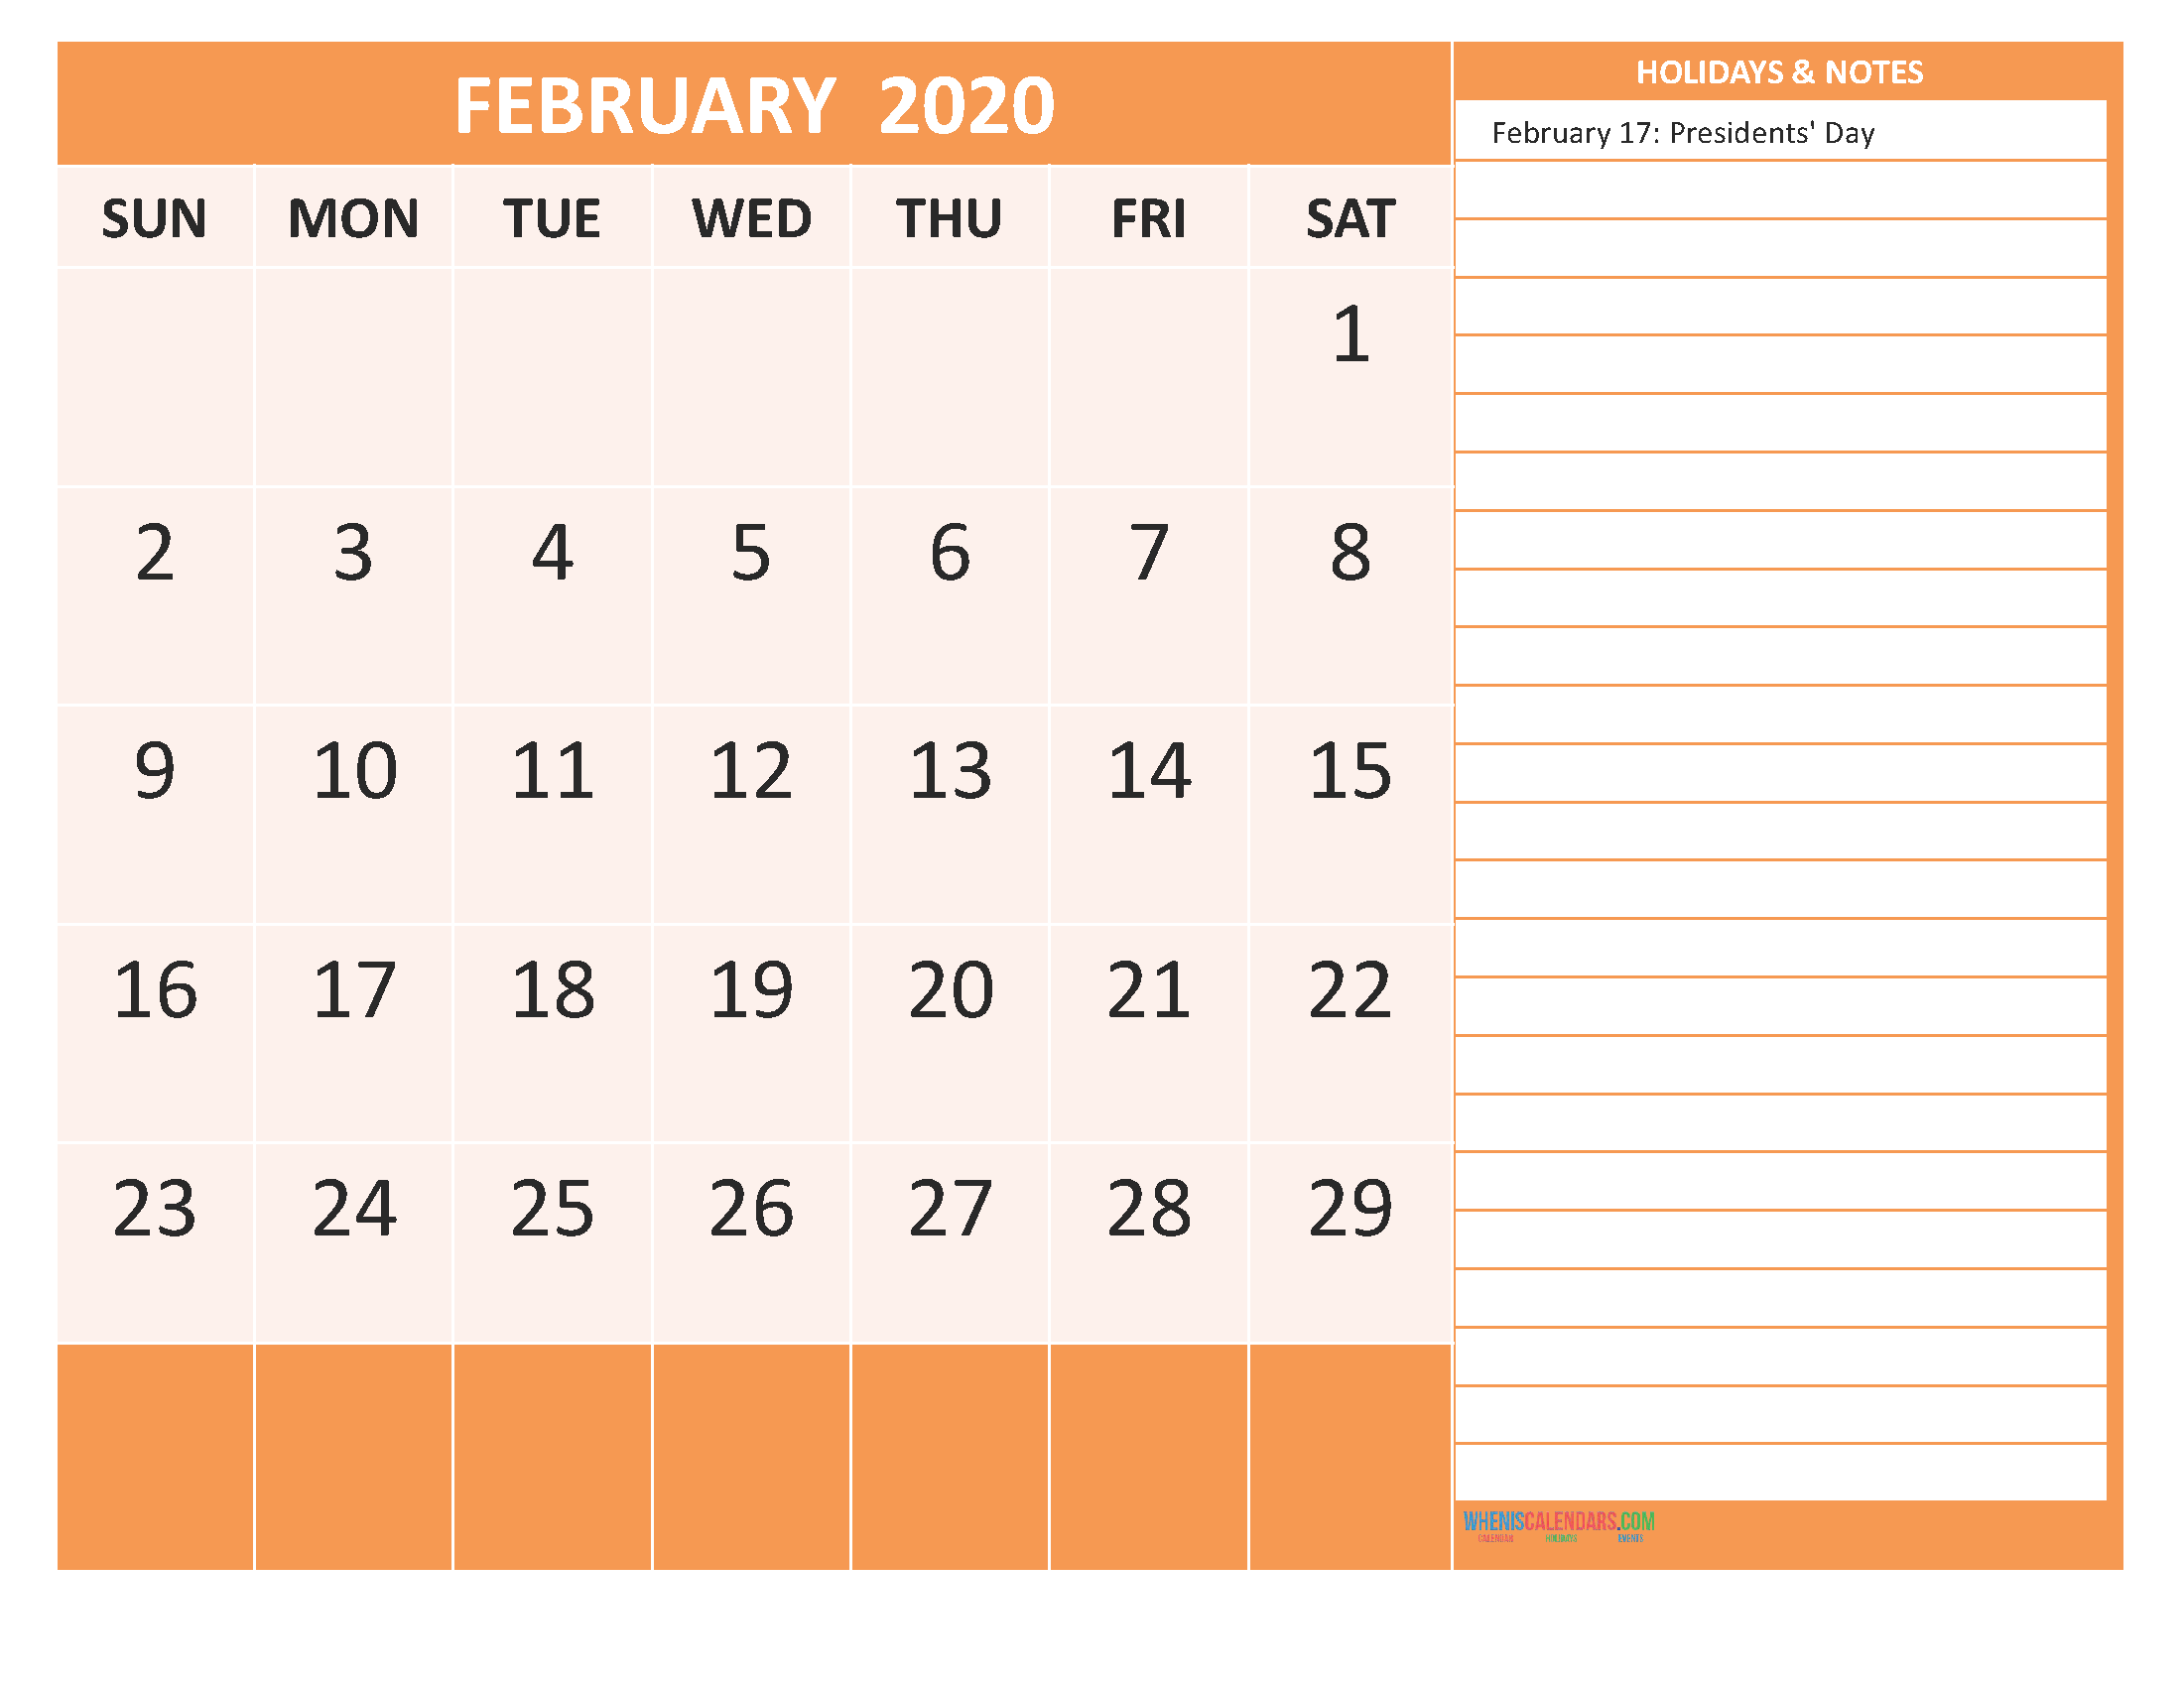 February 2020 Calendar with Holidays Free Printable